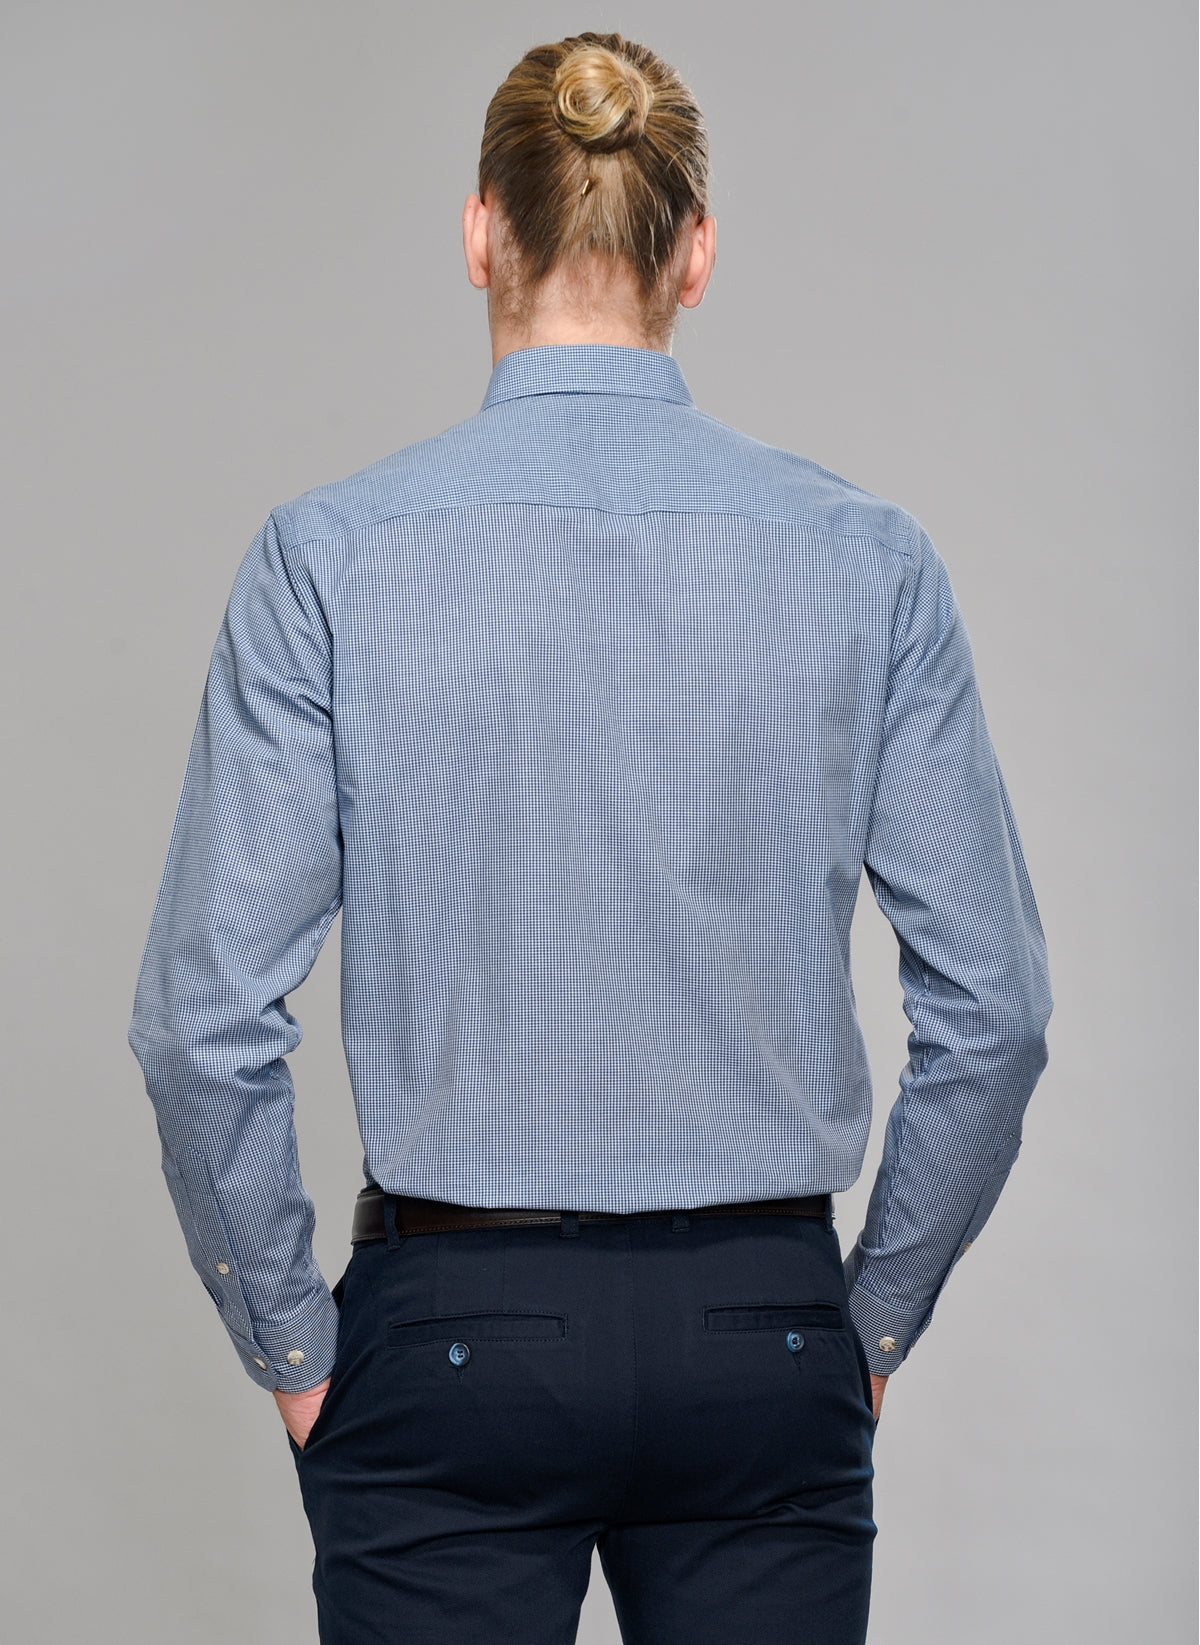 Pin Check Shirt in Navy